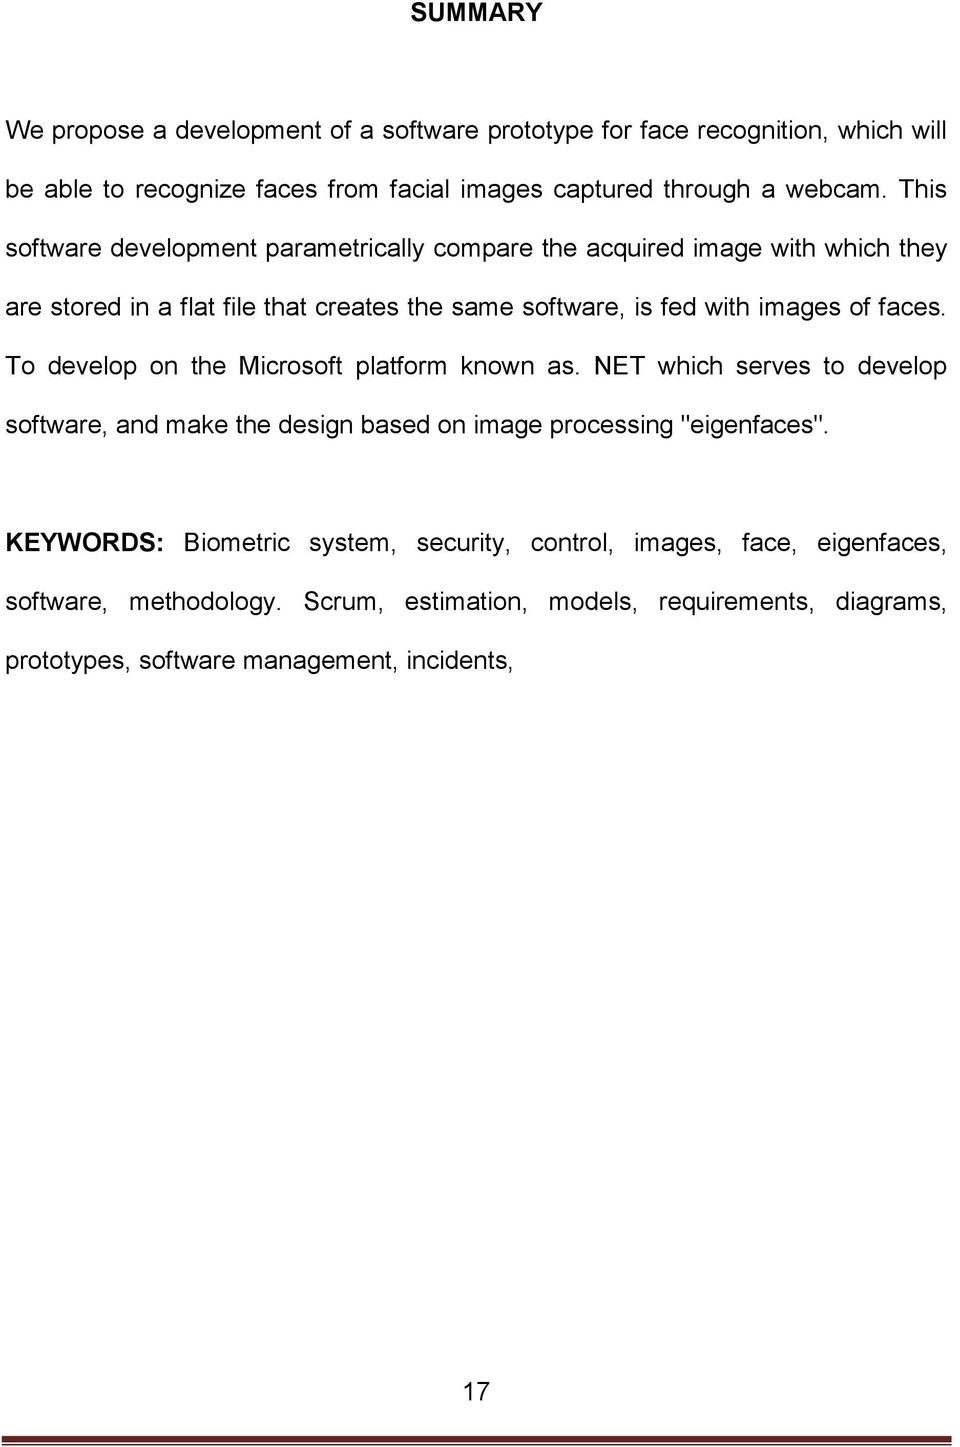 "faces. To develop on the Microsoft platform known as. NET which serves to develop software, and make the design based on image processing ""eigenfaces""."